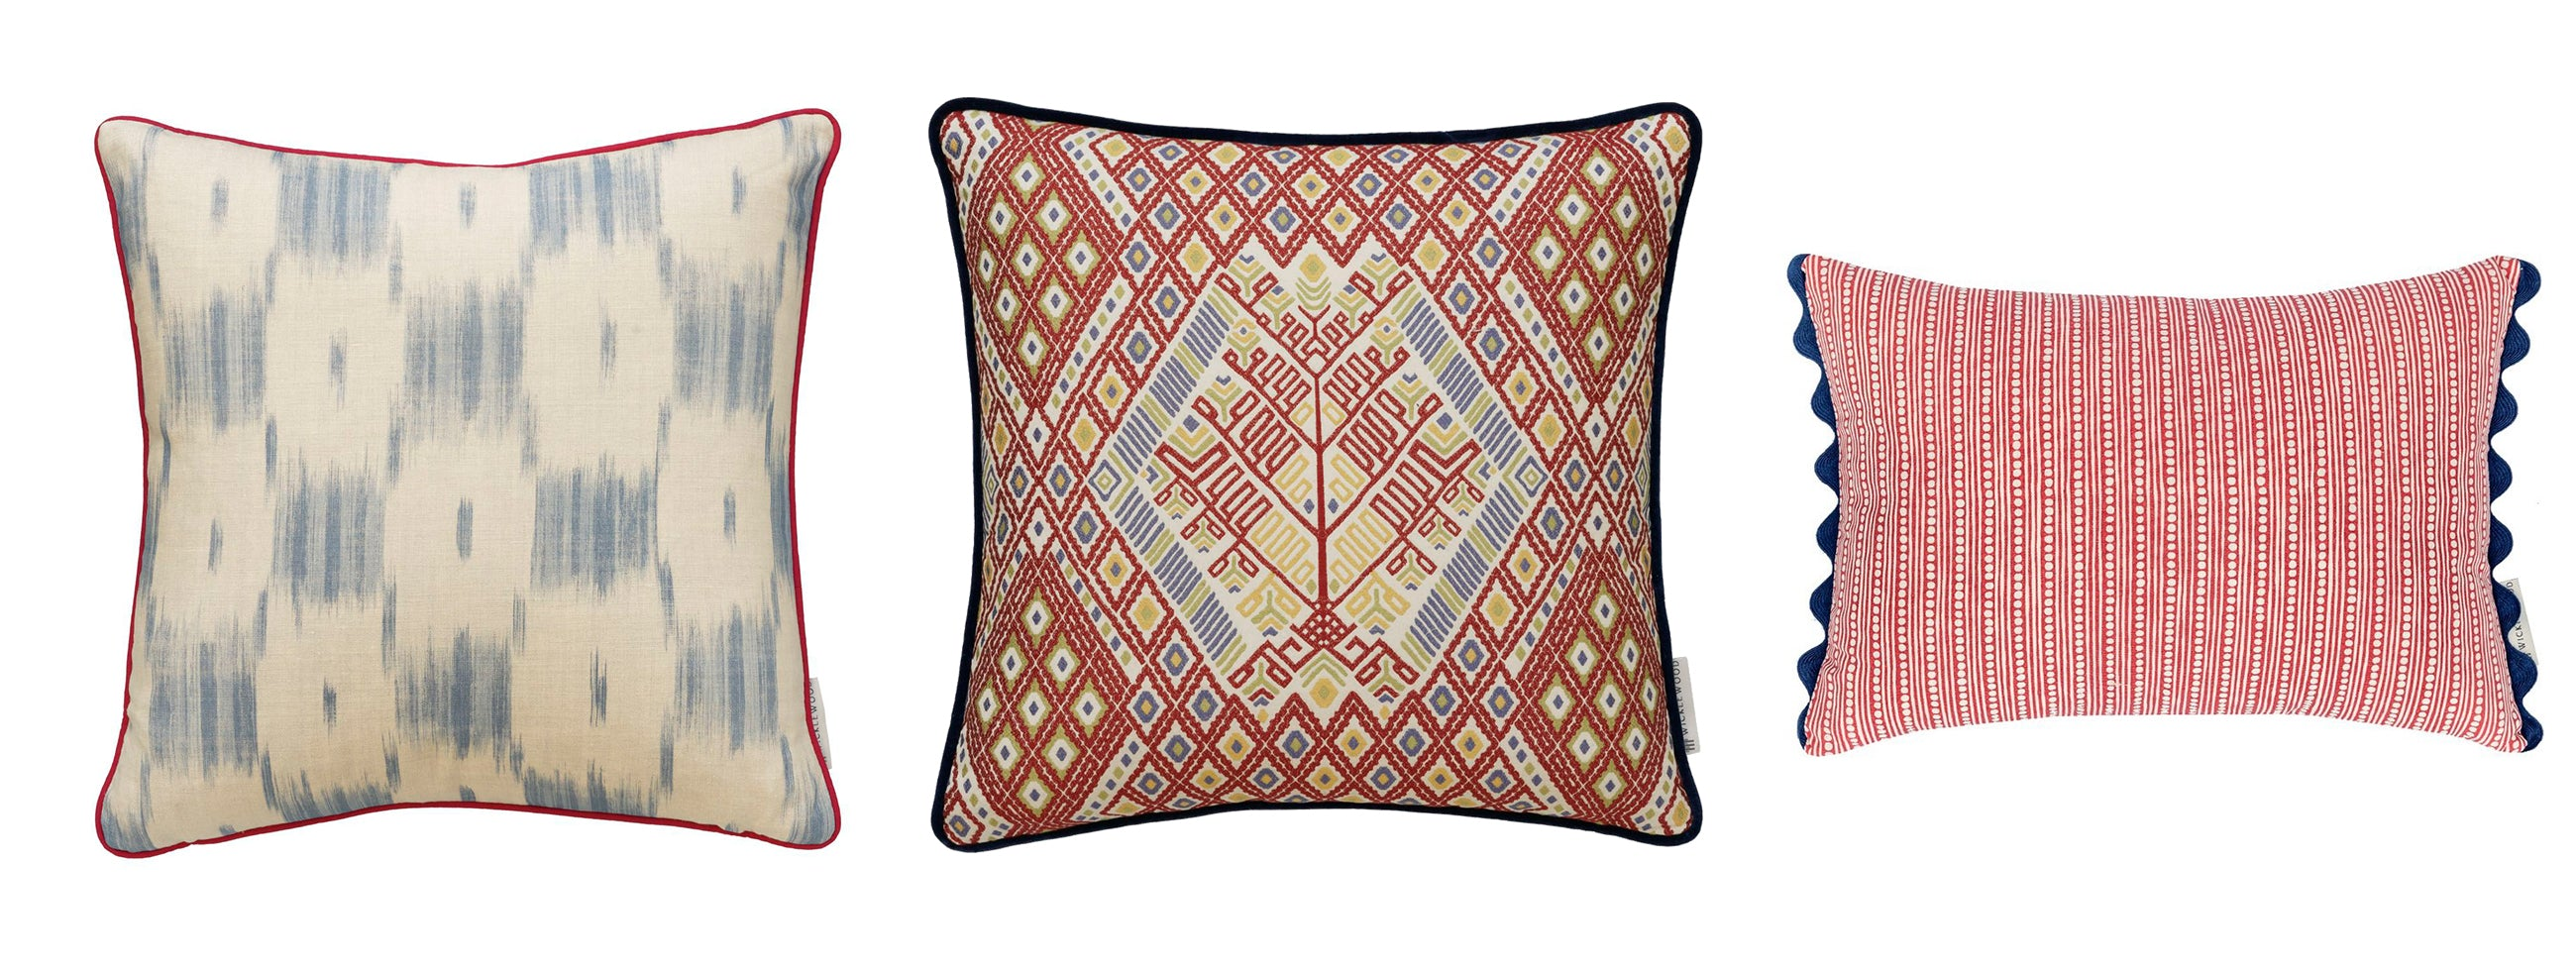 Shop Henry Prideaux wicklewood favourites: ikat colebrook, tree of life, wicklewood red